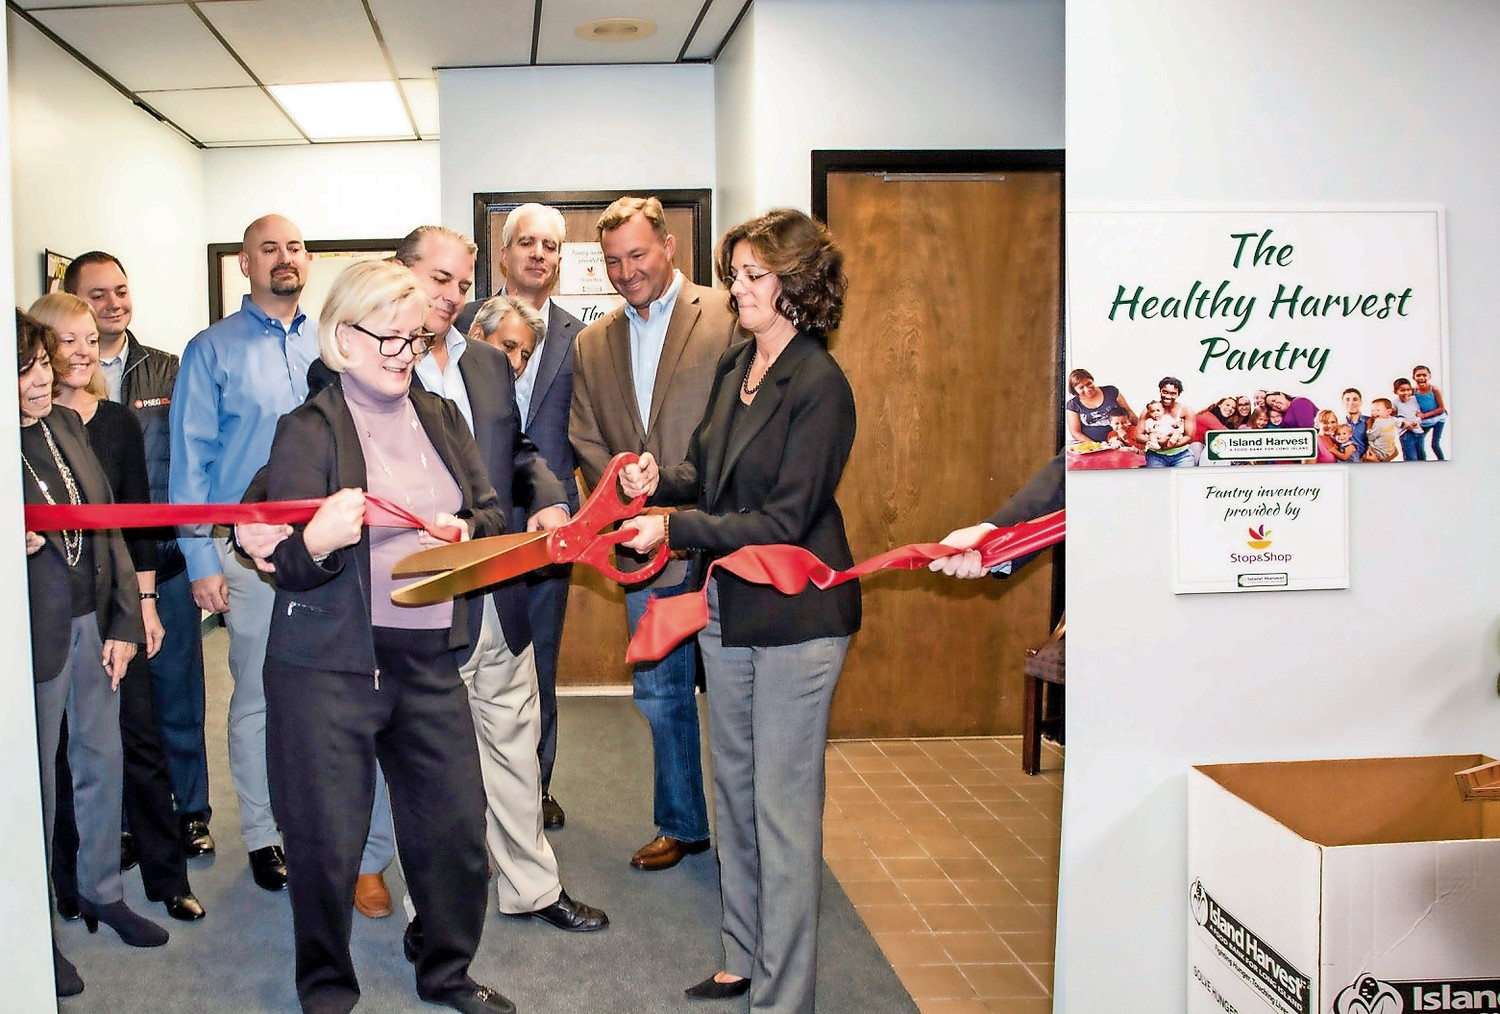 Cynthia G. Scott, executive director of The Safe Center LI, left, and Randi Shubin Dresner, president and CEO of Island Harvest Food Bank, cut the ribbon to officially open the Healthy Harvest Pantry in Bethpage, surrounded by board members of both organizations.